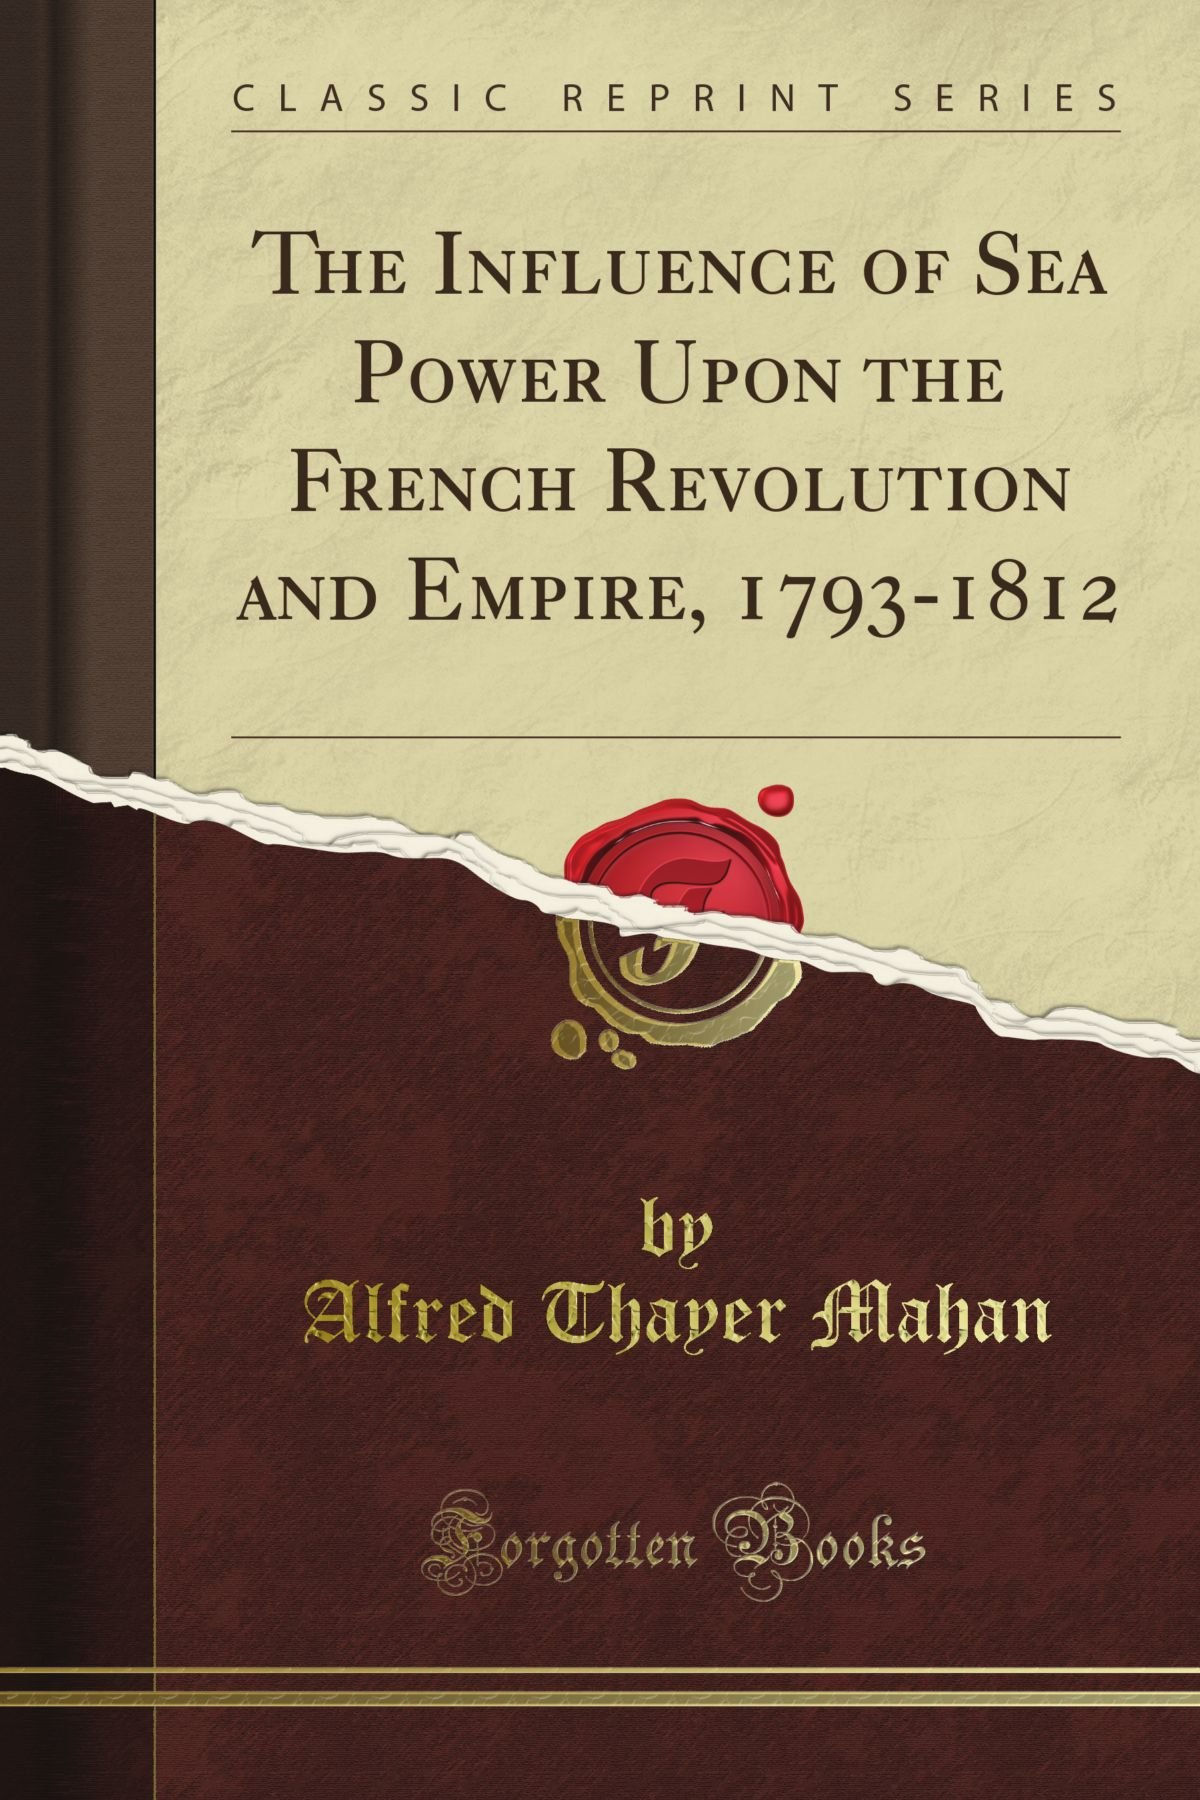 The Influence of Sea Power Upon the French Revolution and Empire, 1793-1812  (Classic Reprint): Alfred Thayer Mahan: Amazon.com: Books